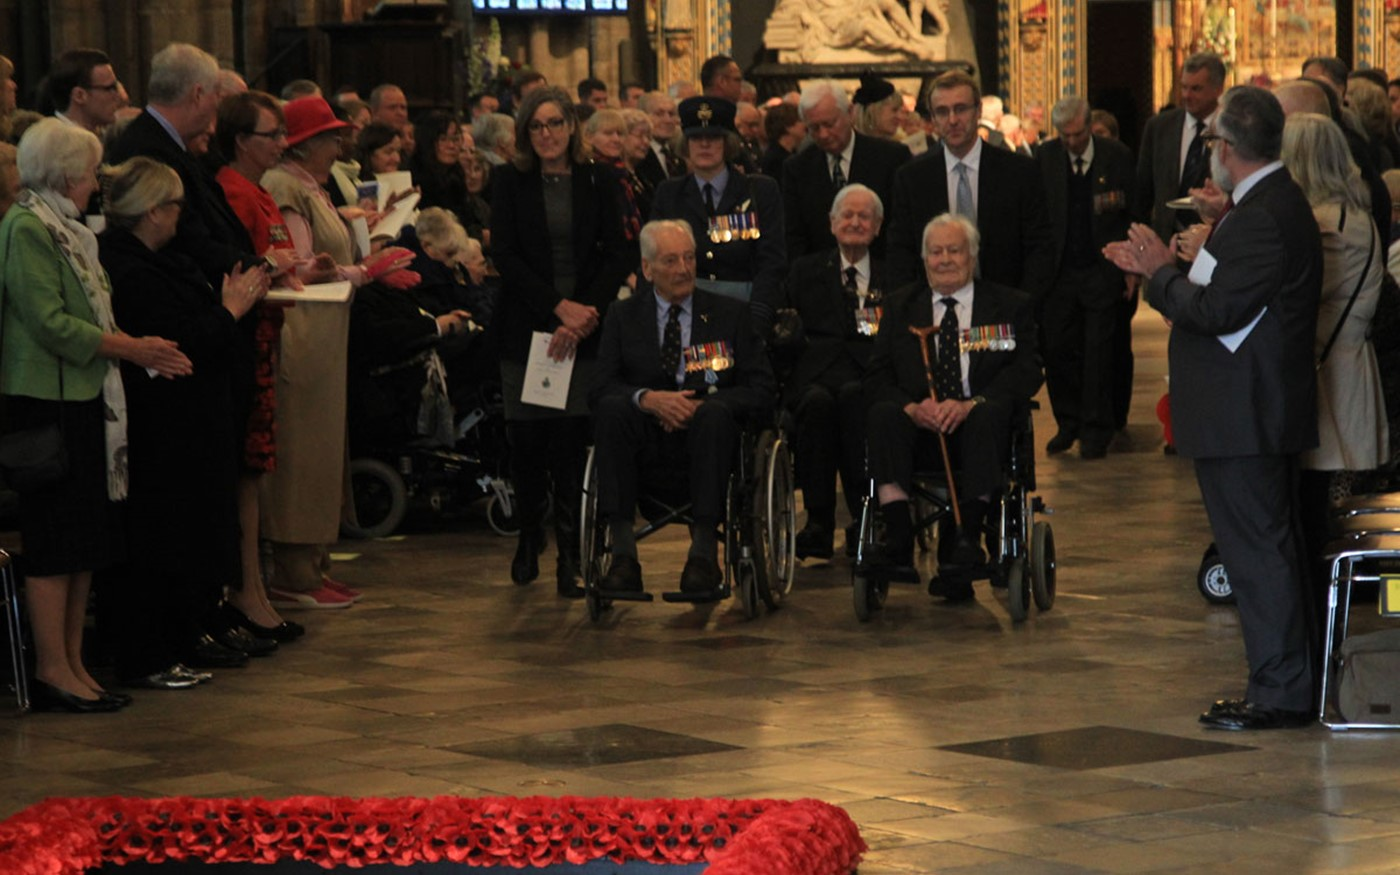 Battle of Britain veterans were applauded by the congregation after the service